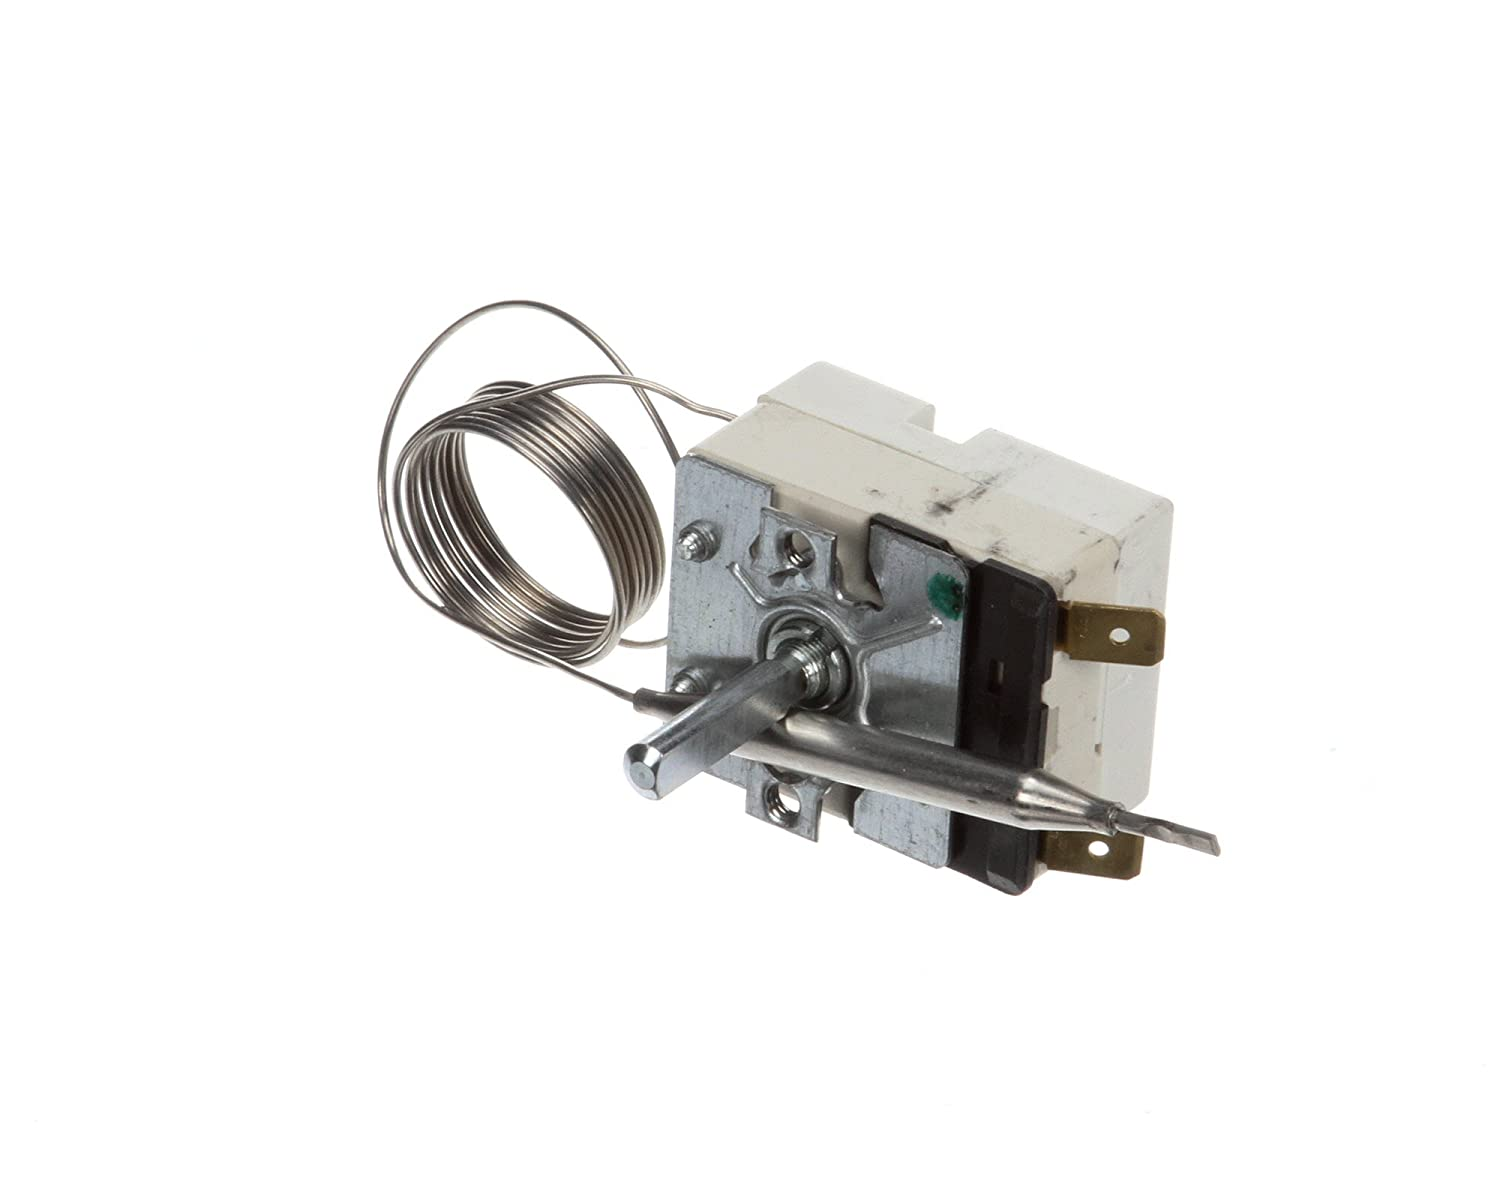 Moffat M022787 E85 OFFer Thermostat Max 65% OFF Held